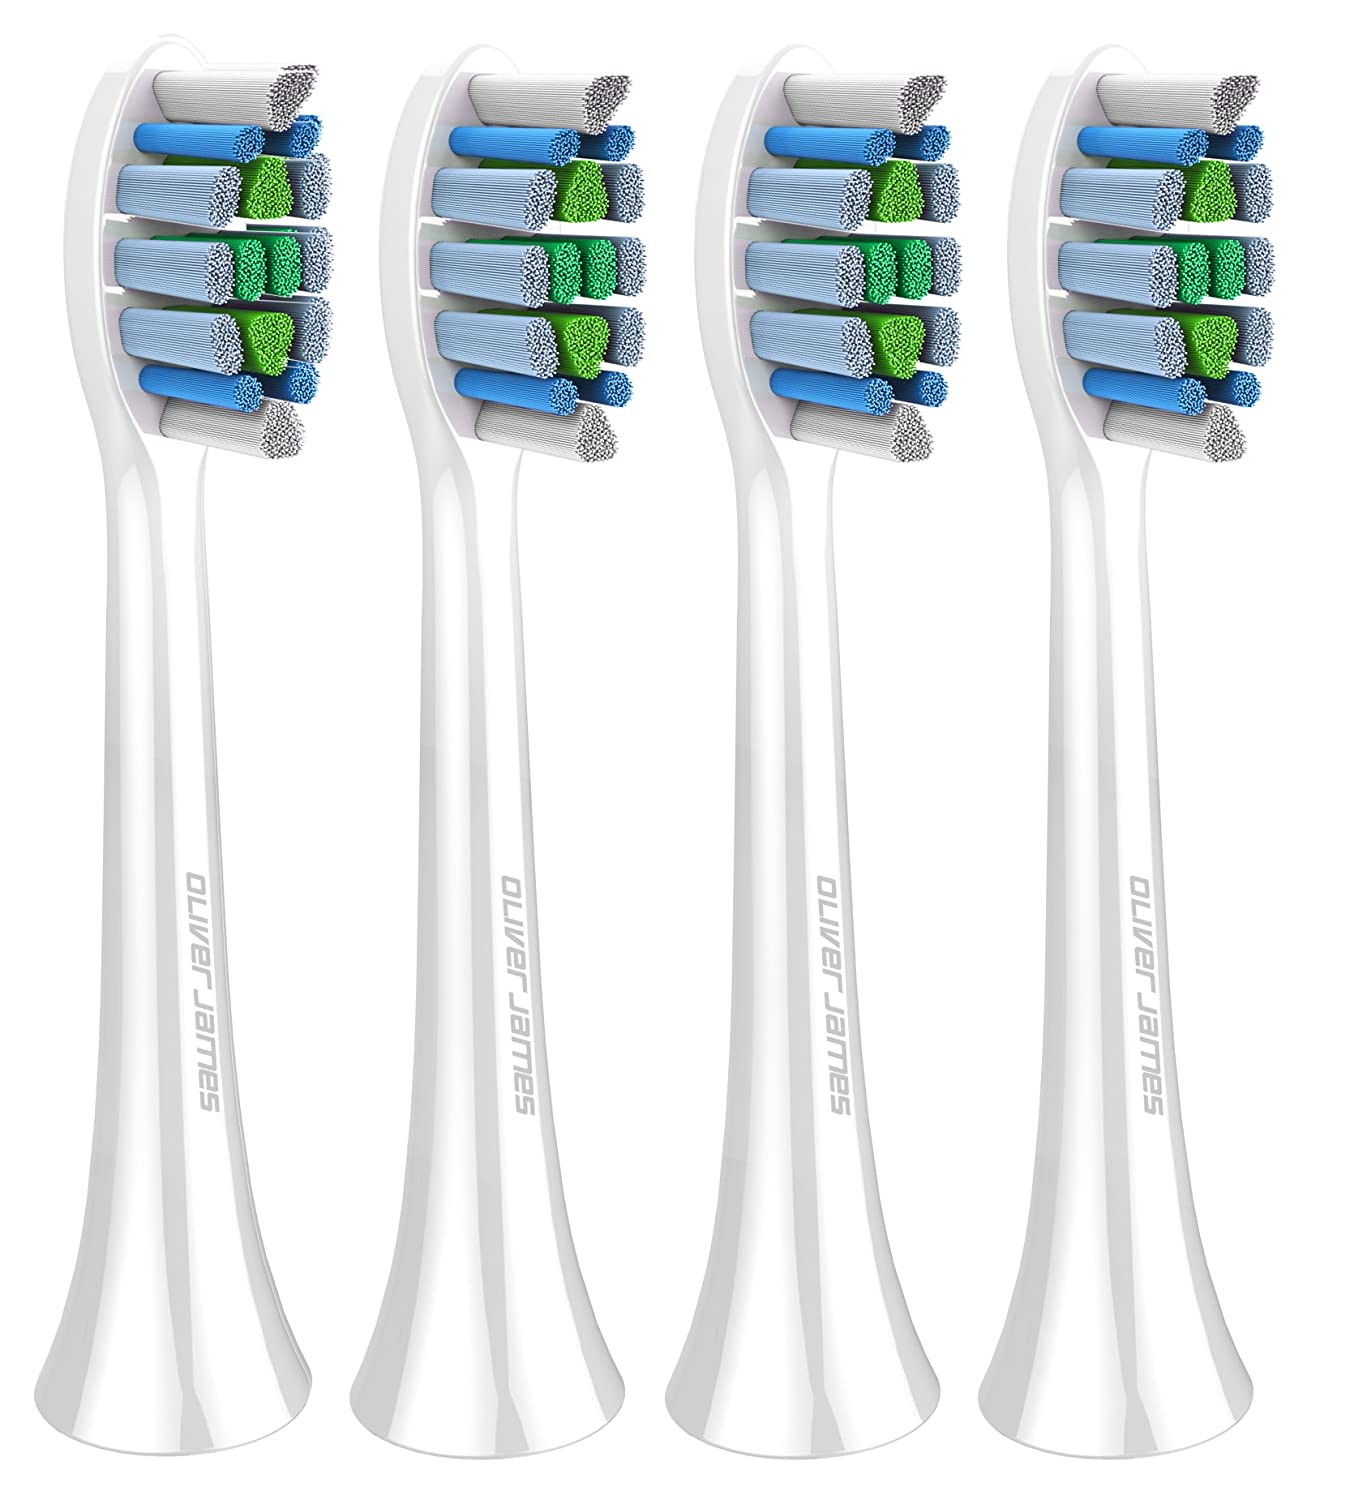 Oliver James New Generation Sonic Electric Toothbrush Replacement Brush Heads - 4 Pack